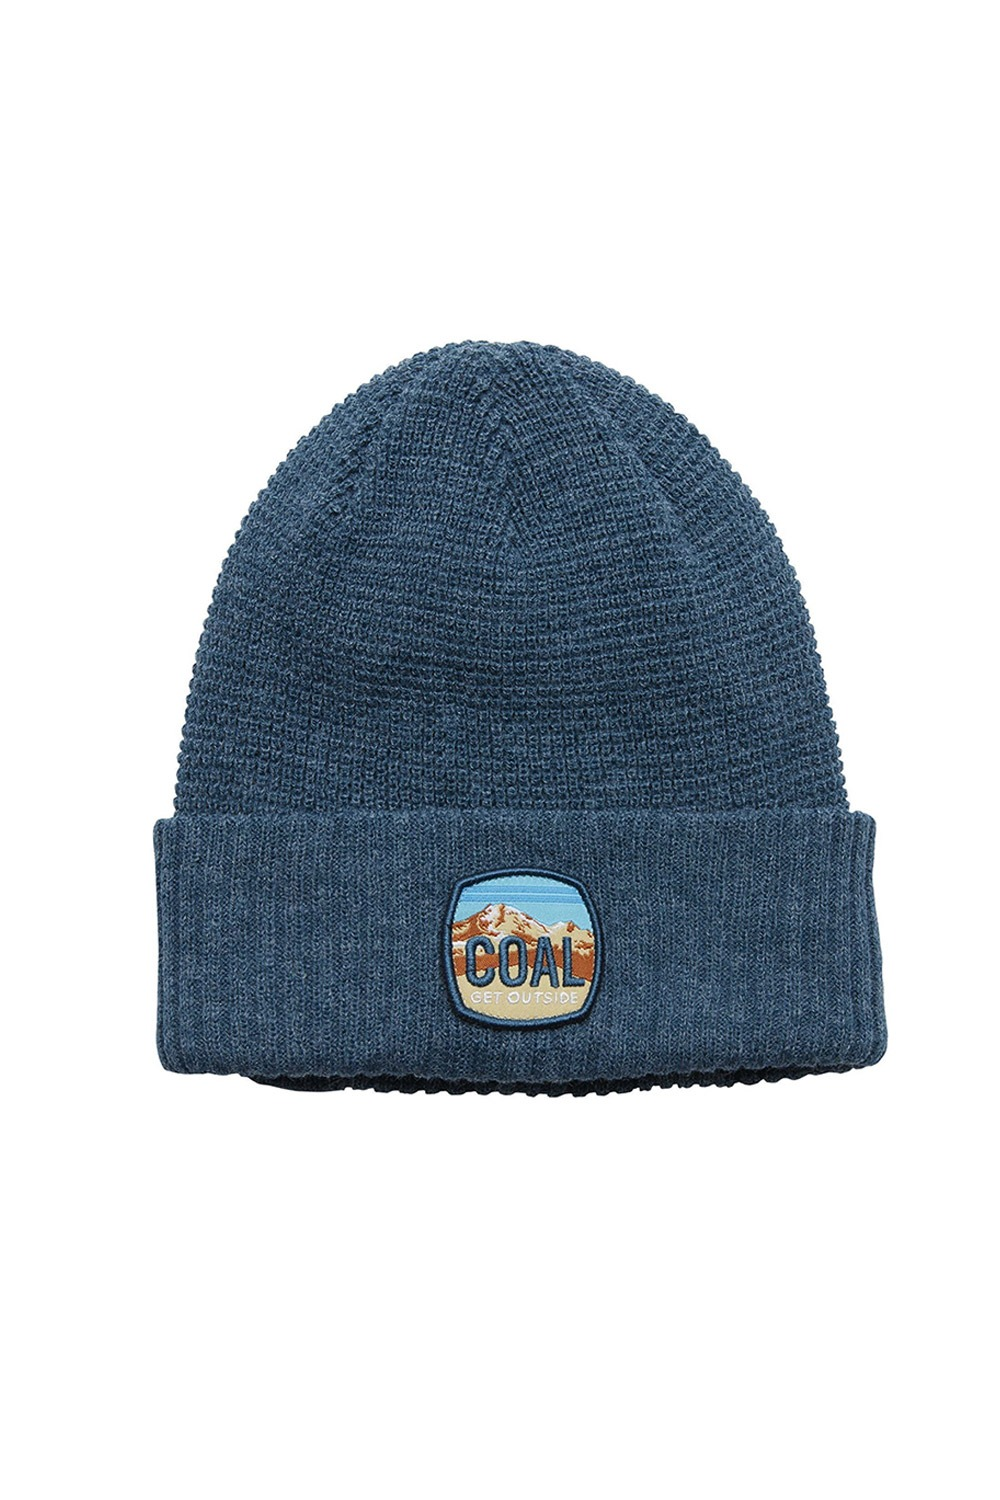 콜 모자 더 투마로 비니_남녀공용_1920 COAL_THE TUMALO BEANIE_HEATHER SLATE_ICA909SL[18]_DICA909SL